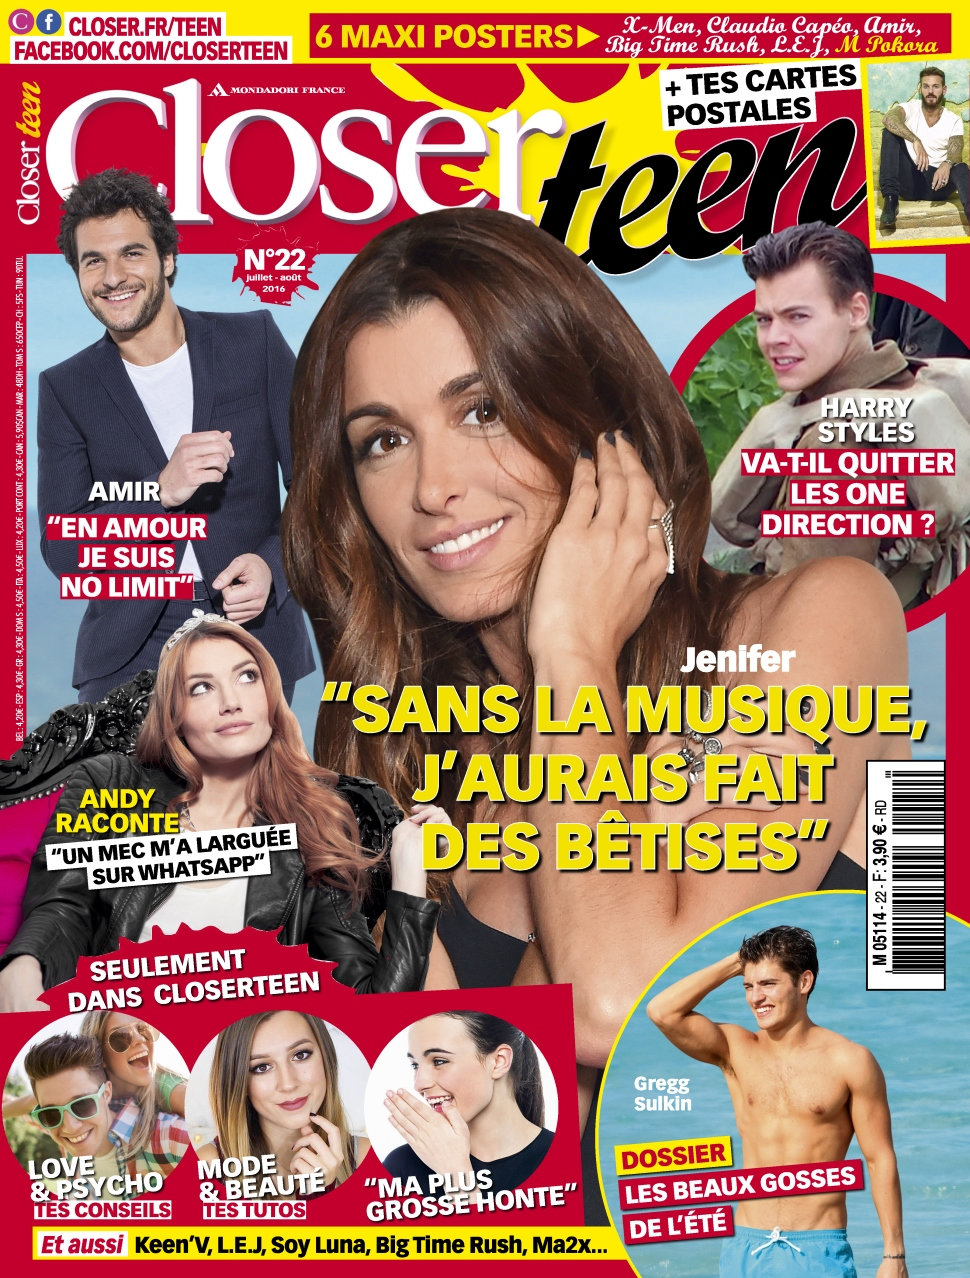 Closer Teen N°22 - Juillet/Aout 2016